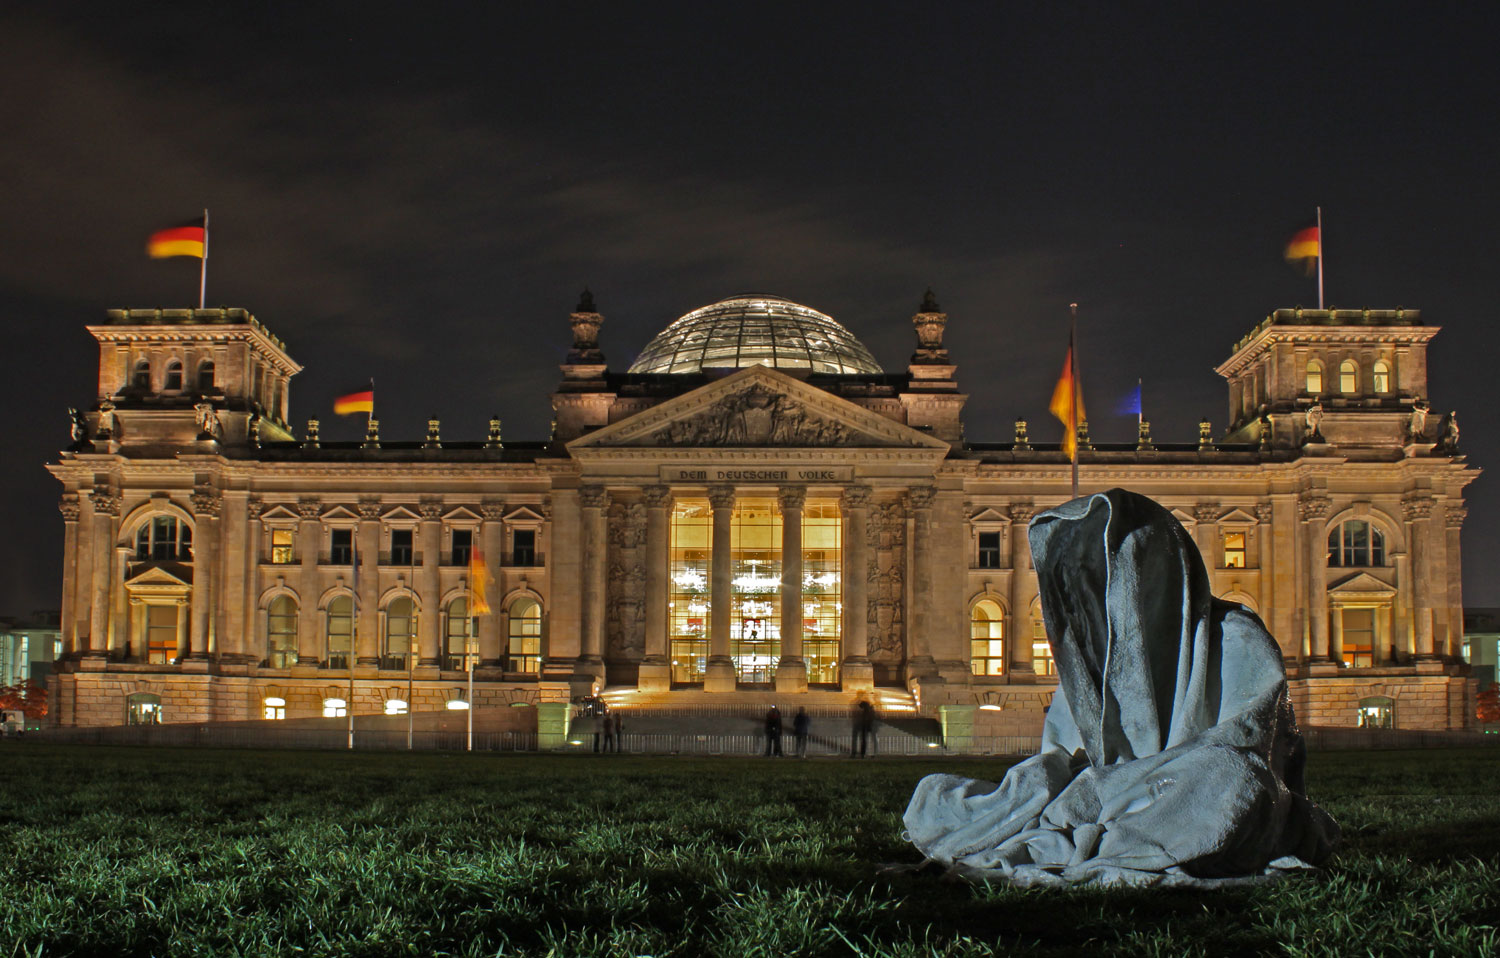 festival-of-lights-berlin-germany-reichstag-contemporary-light-art-sculpture-guardians-of-time-waechter-manfred-kielnhofer-7426y